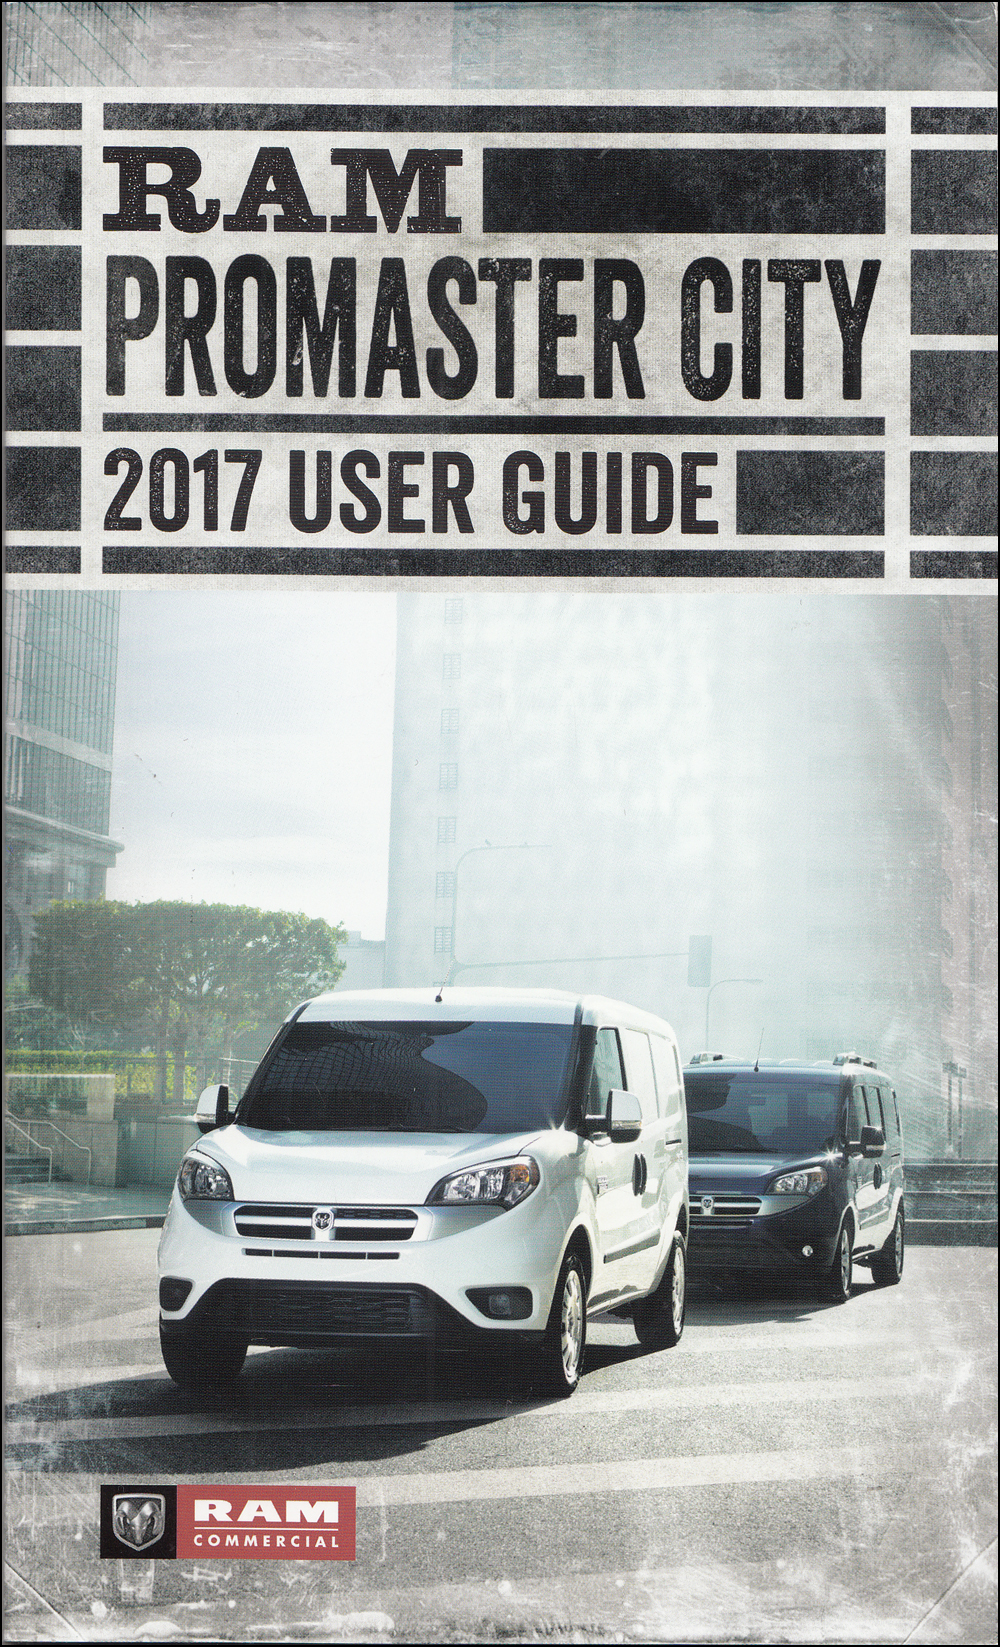 2017 Ram Promaster City User Guide Owner's Manual Original